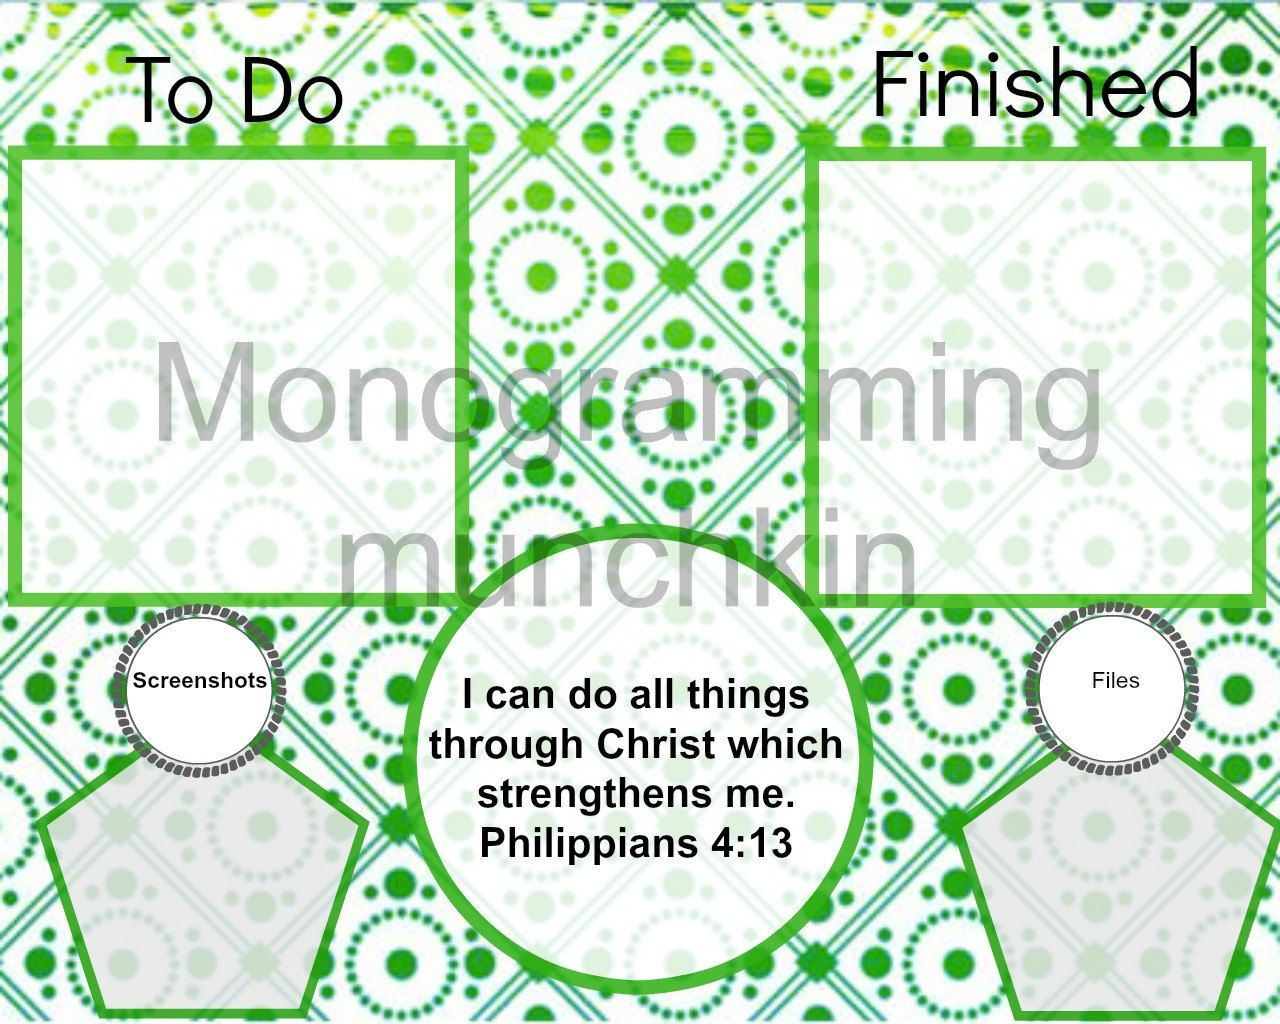 Personalized Functional Desktop Background/ Wallpaper.  Helps you keep track of everything and stay organized!! by MonogrammingMunchkin on Etsy